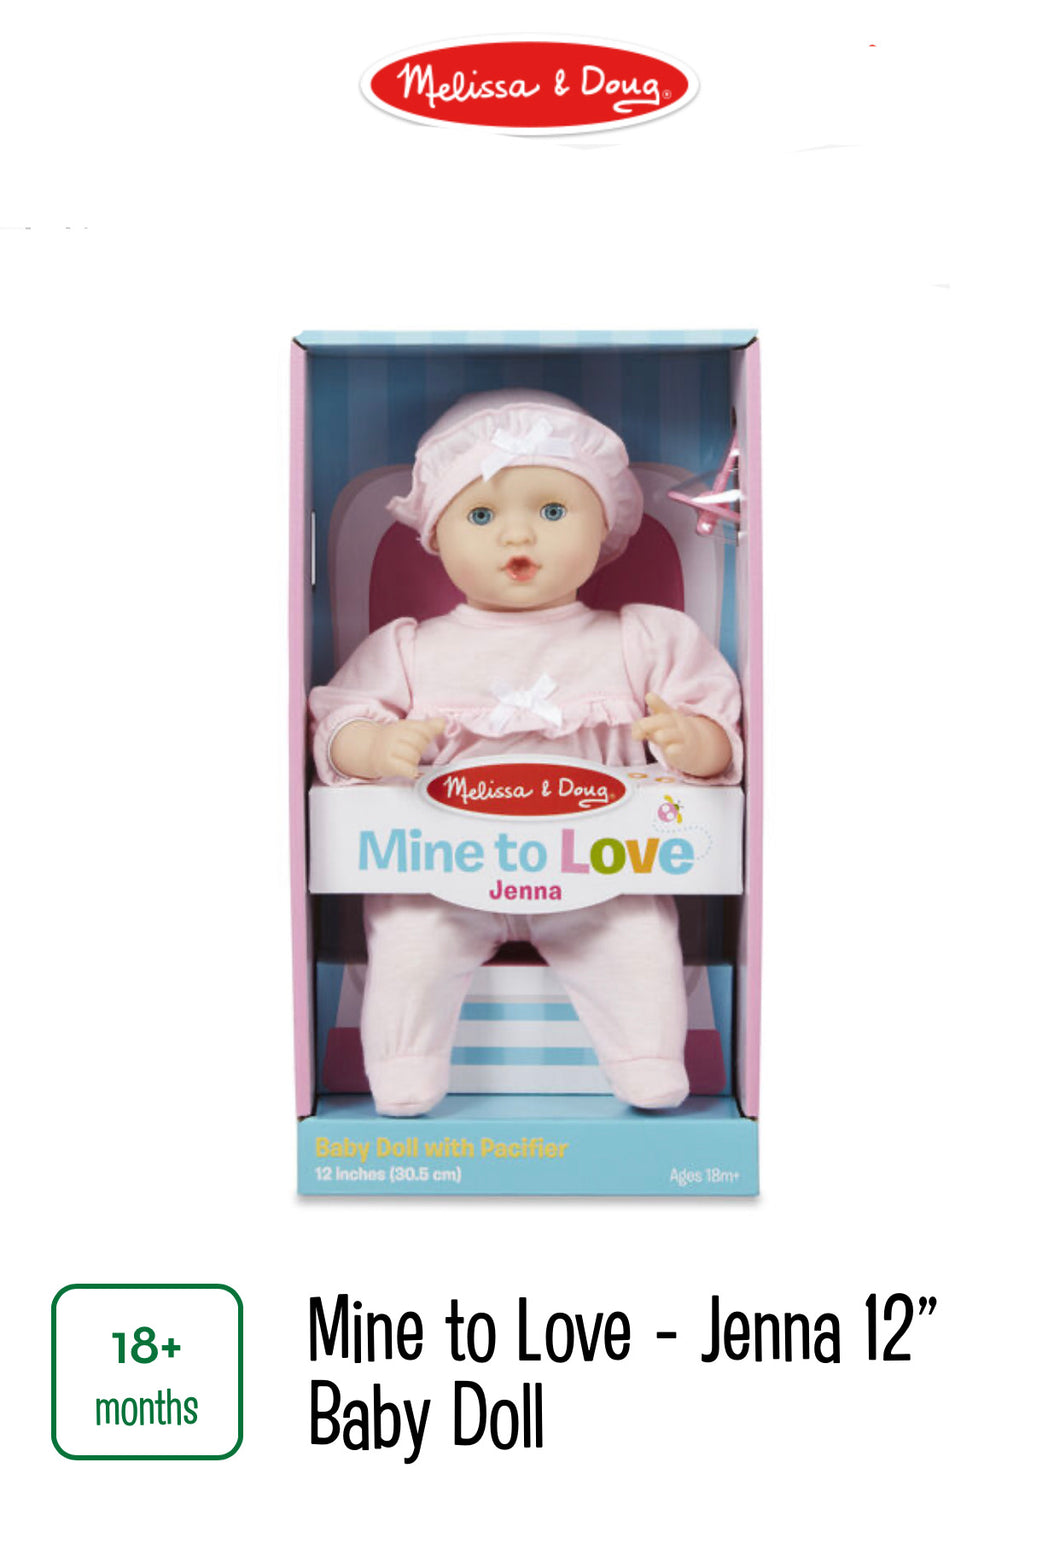 "Mine to Love Jenna 12"" Baby Doll"